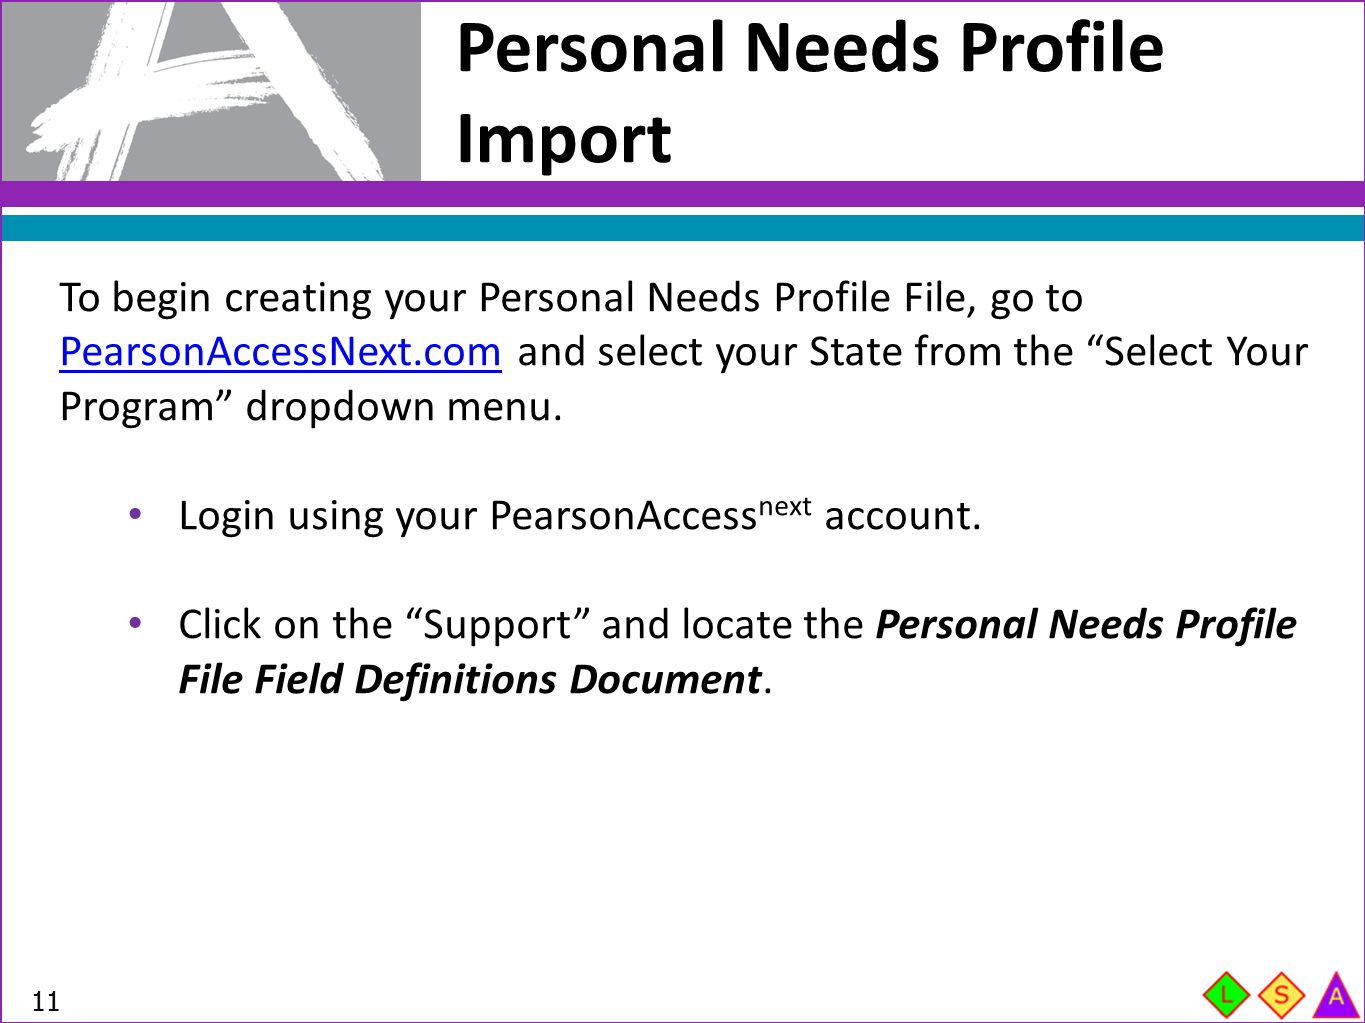 """To begin creating your Personal Needs Profile File, go to PearsonAccessNext.com and select your State from the """"Select Your Program"""" dropdown menu. Pe"""